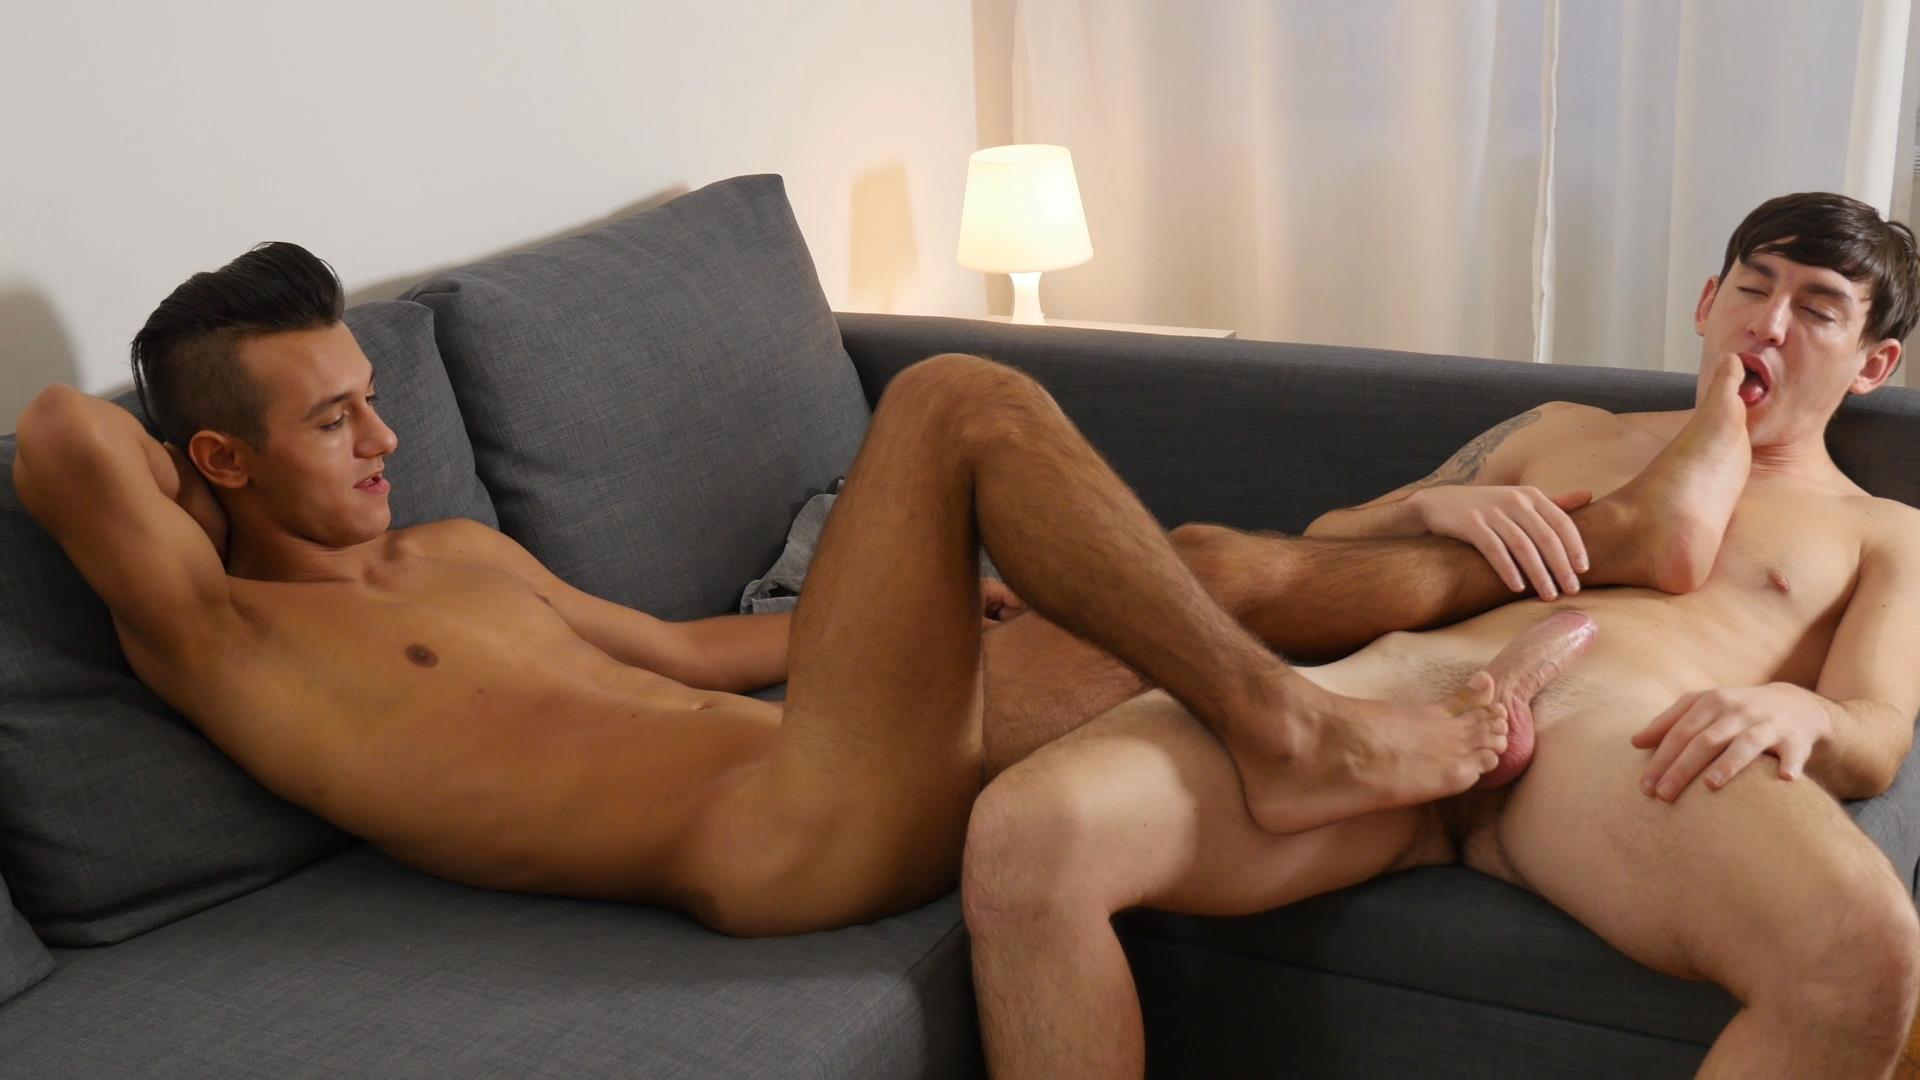 Emo bareback feet gay porn dominic pacifico